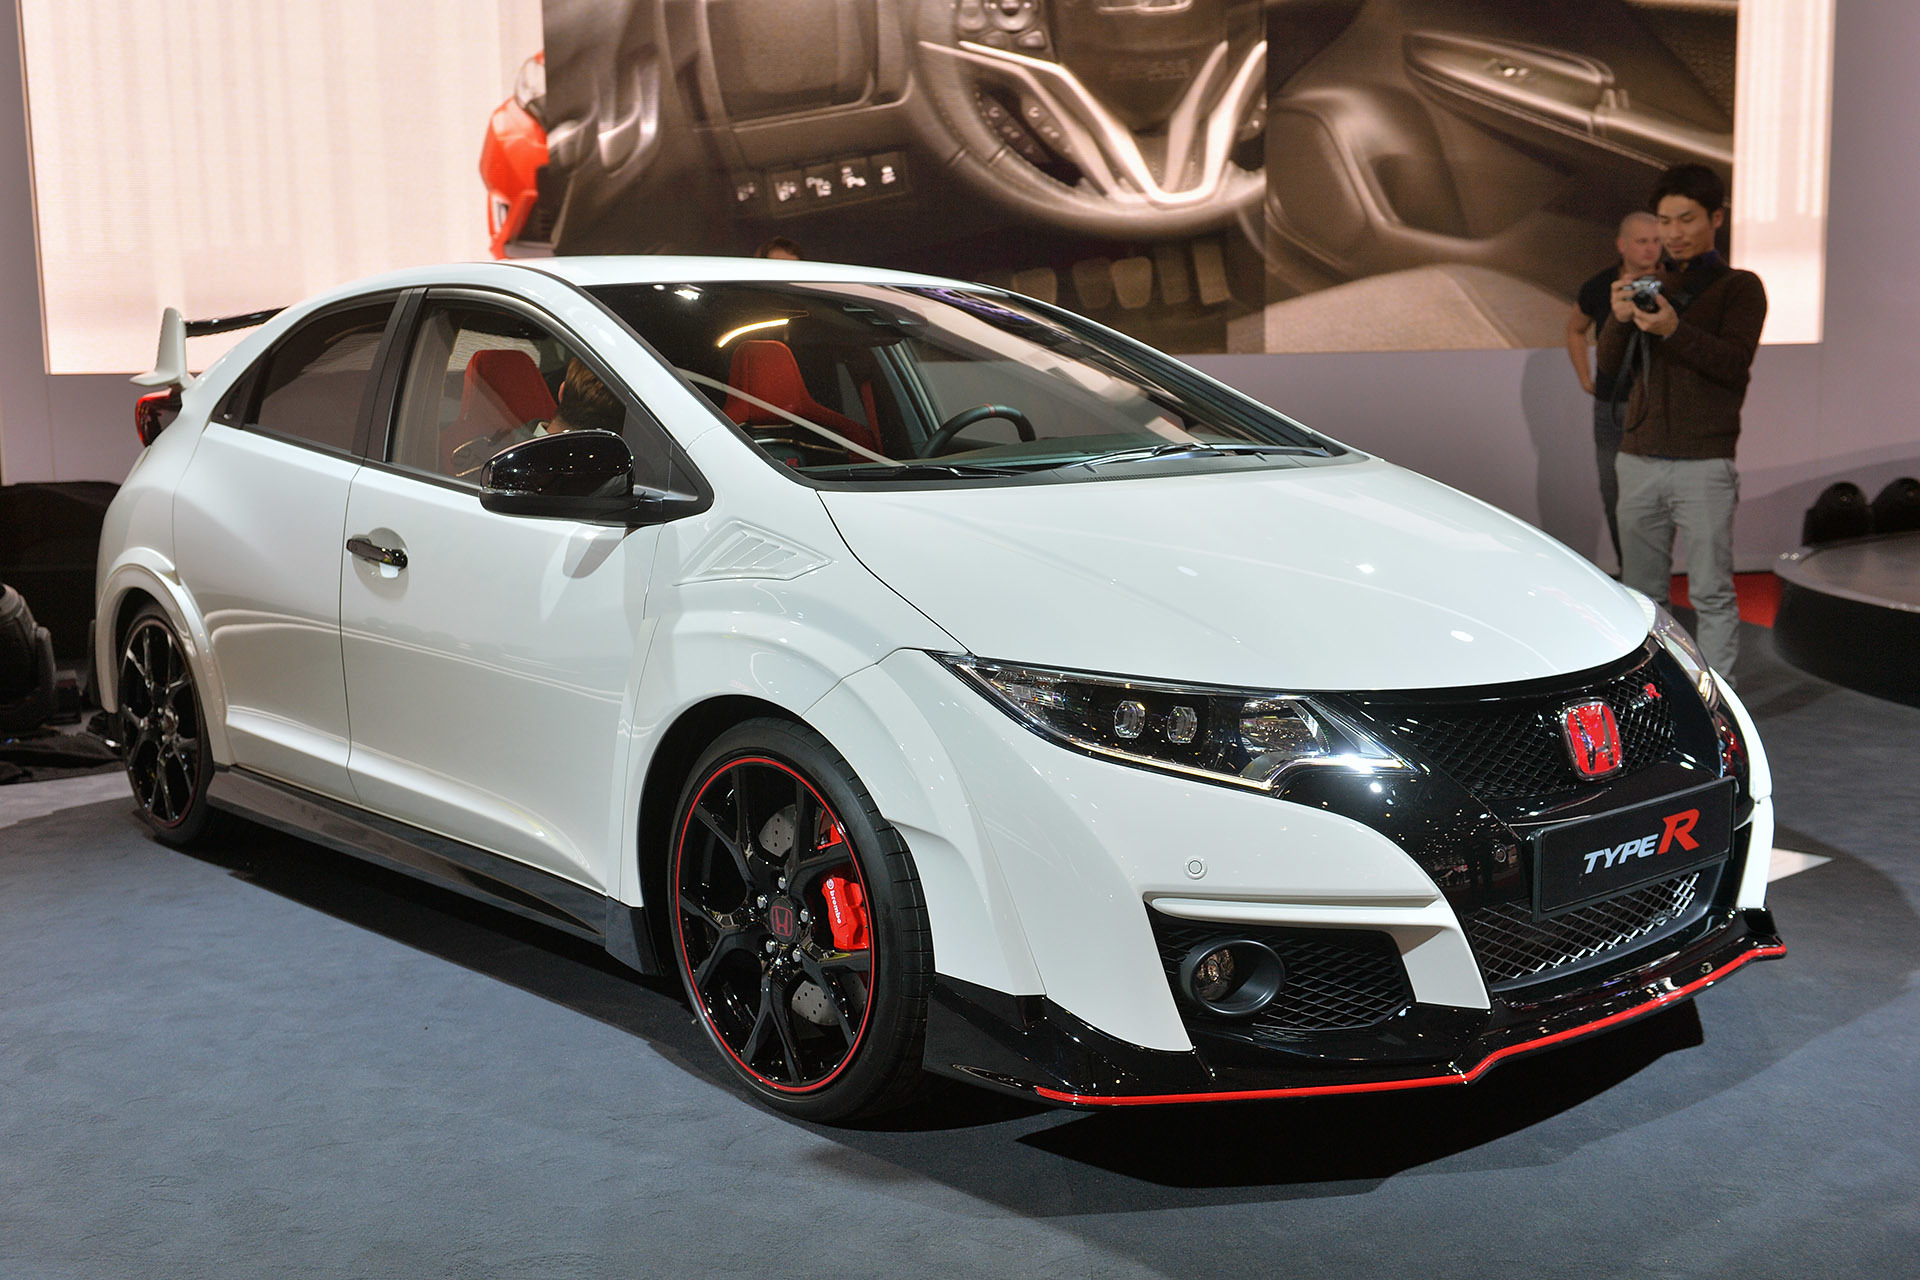 2016 honda civic type r geneva 2015 autoblog. Black Bedroom Furniture Sets. Home Design Ideas